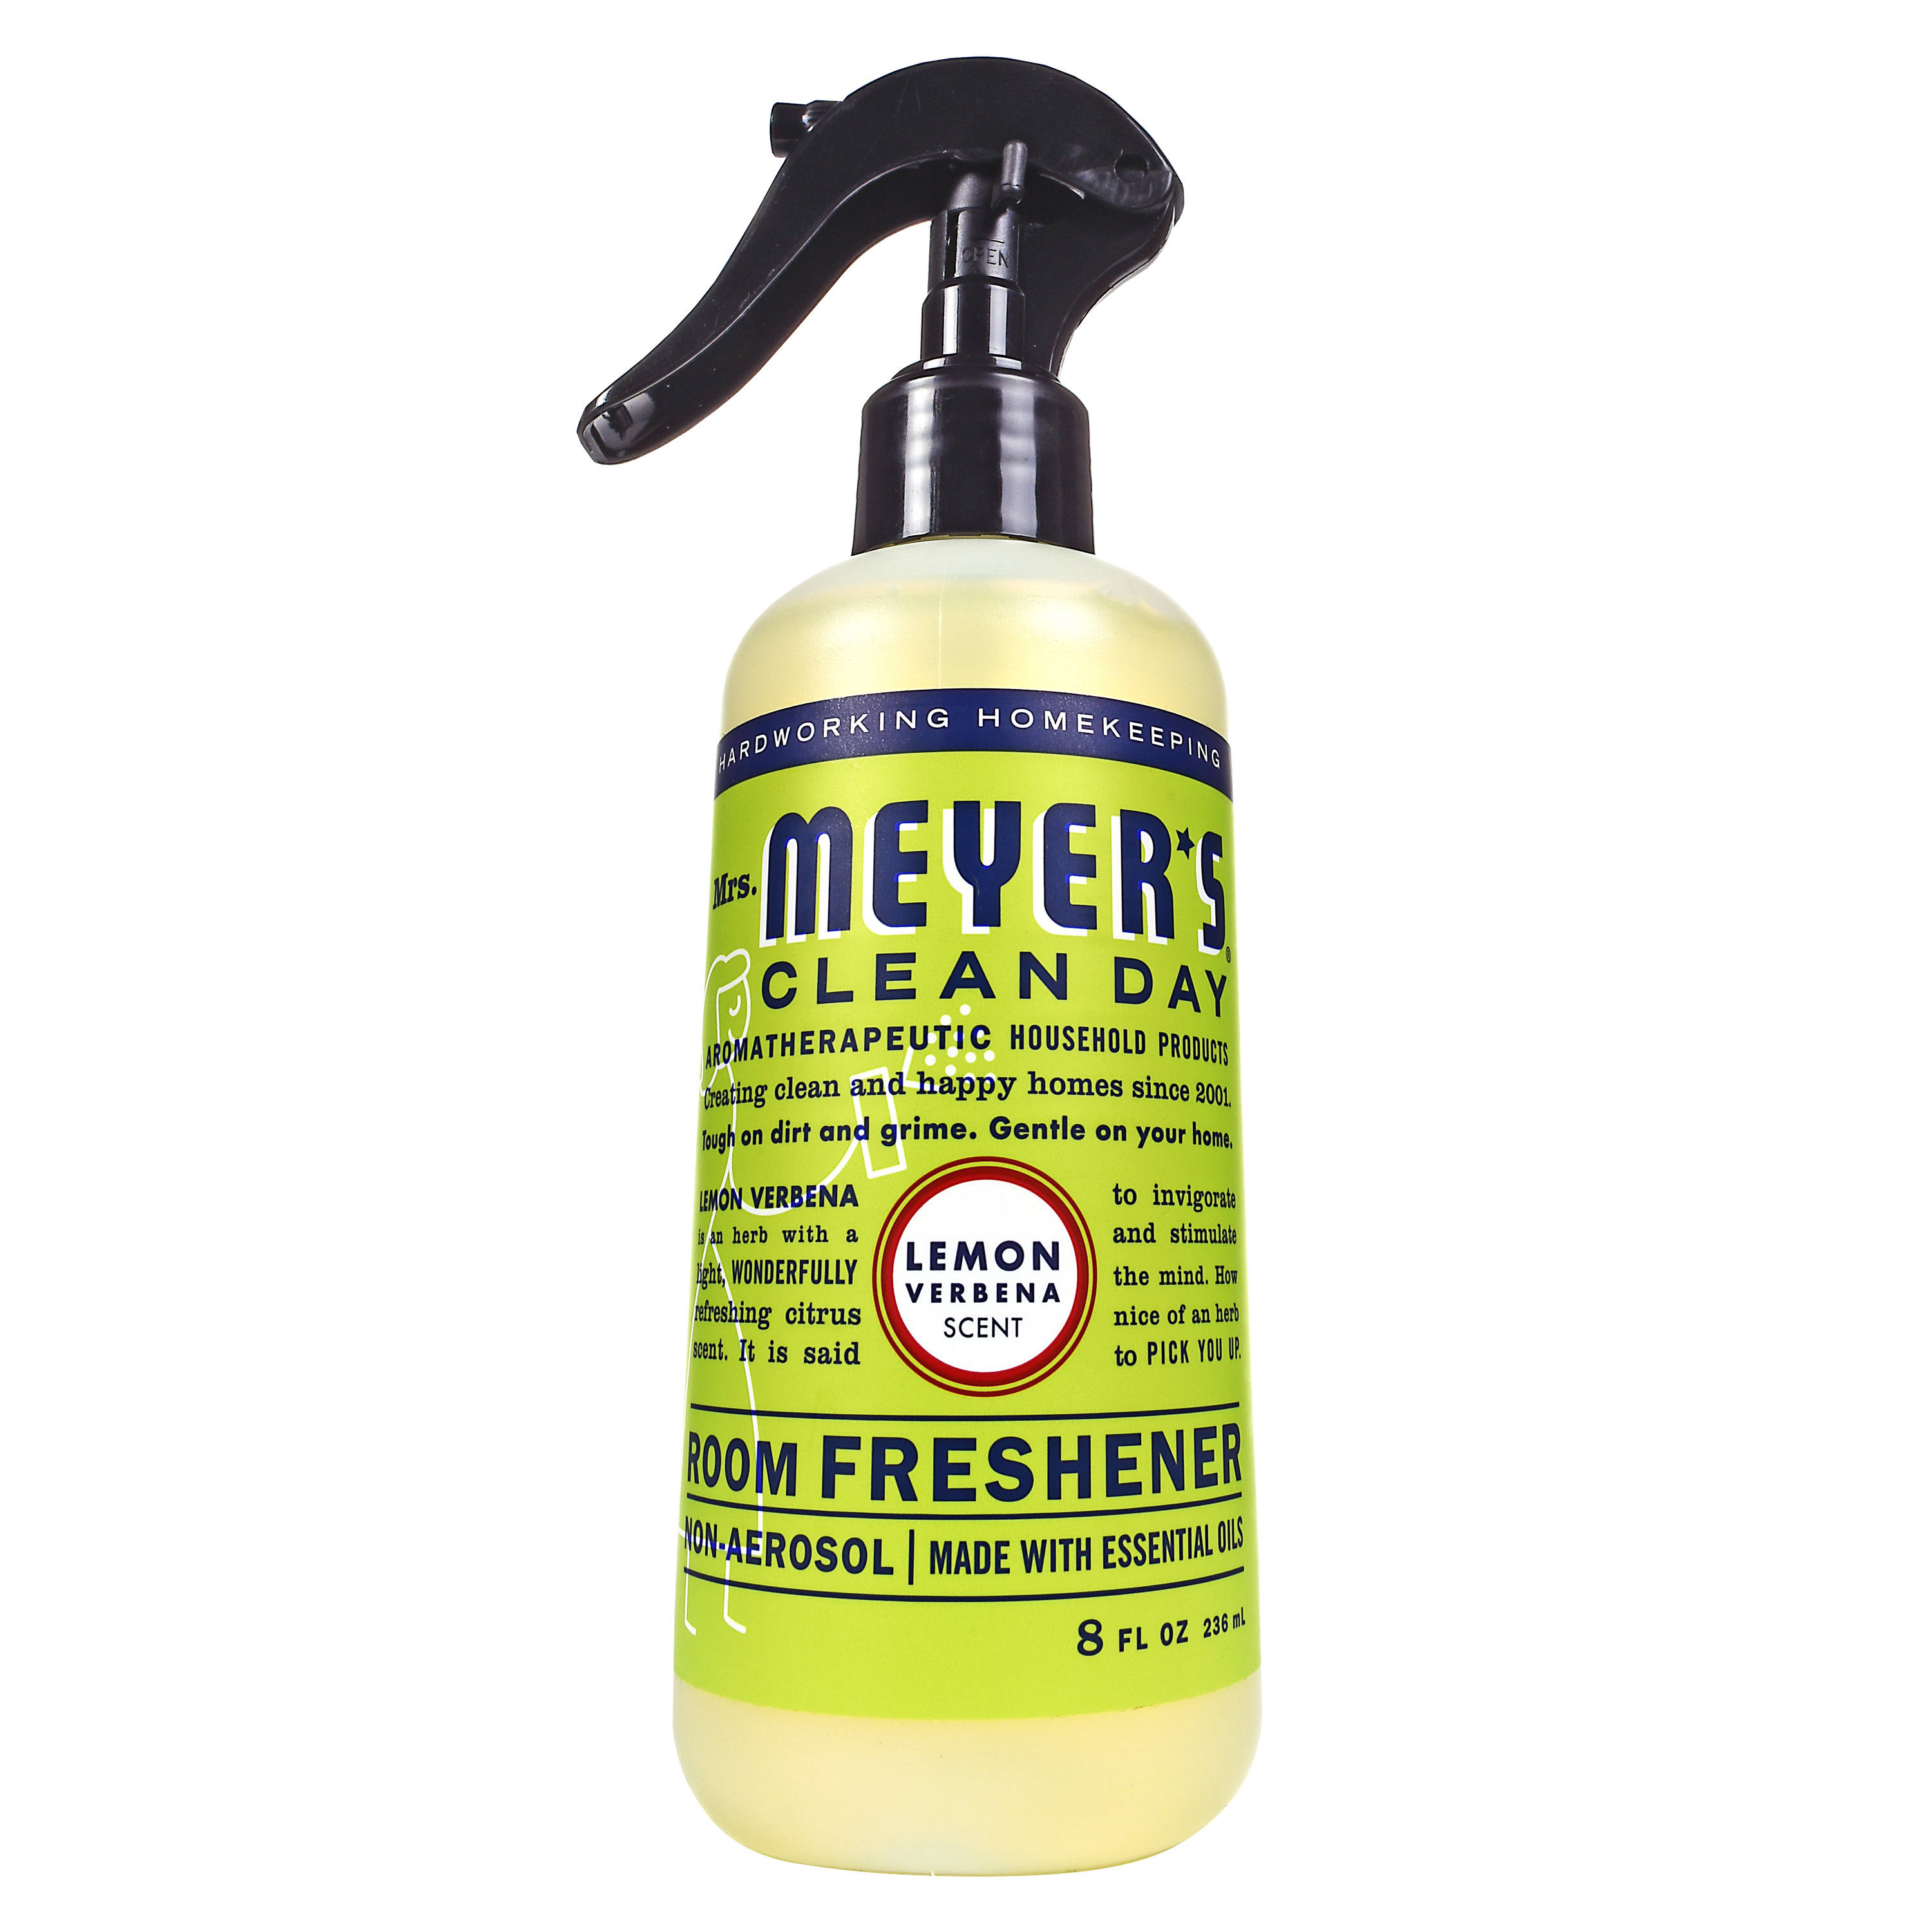 Mrs. Meyer's Room Freshener - Lemon Verbena, 240ml